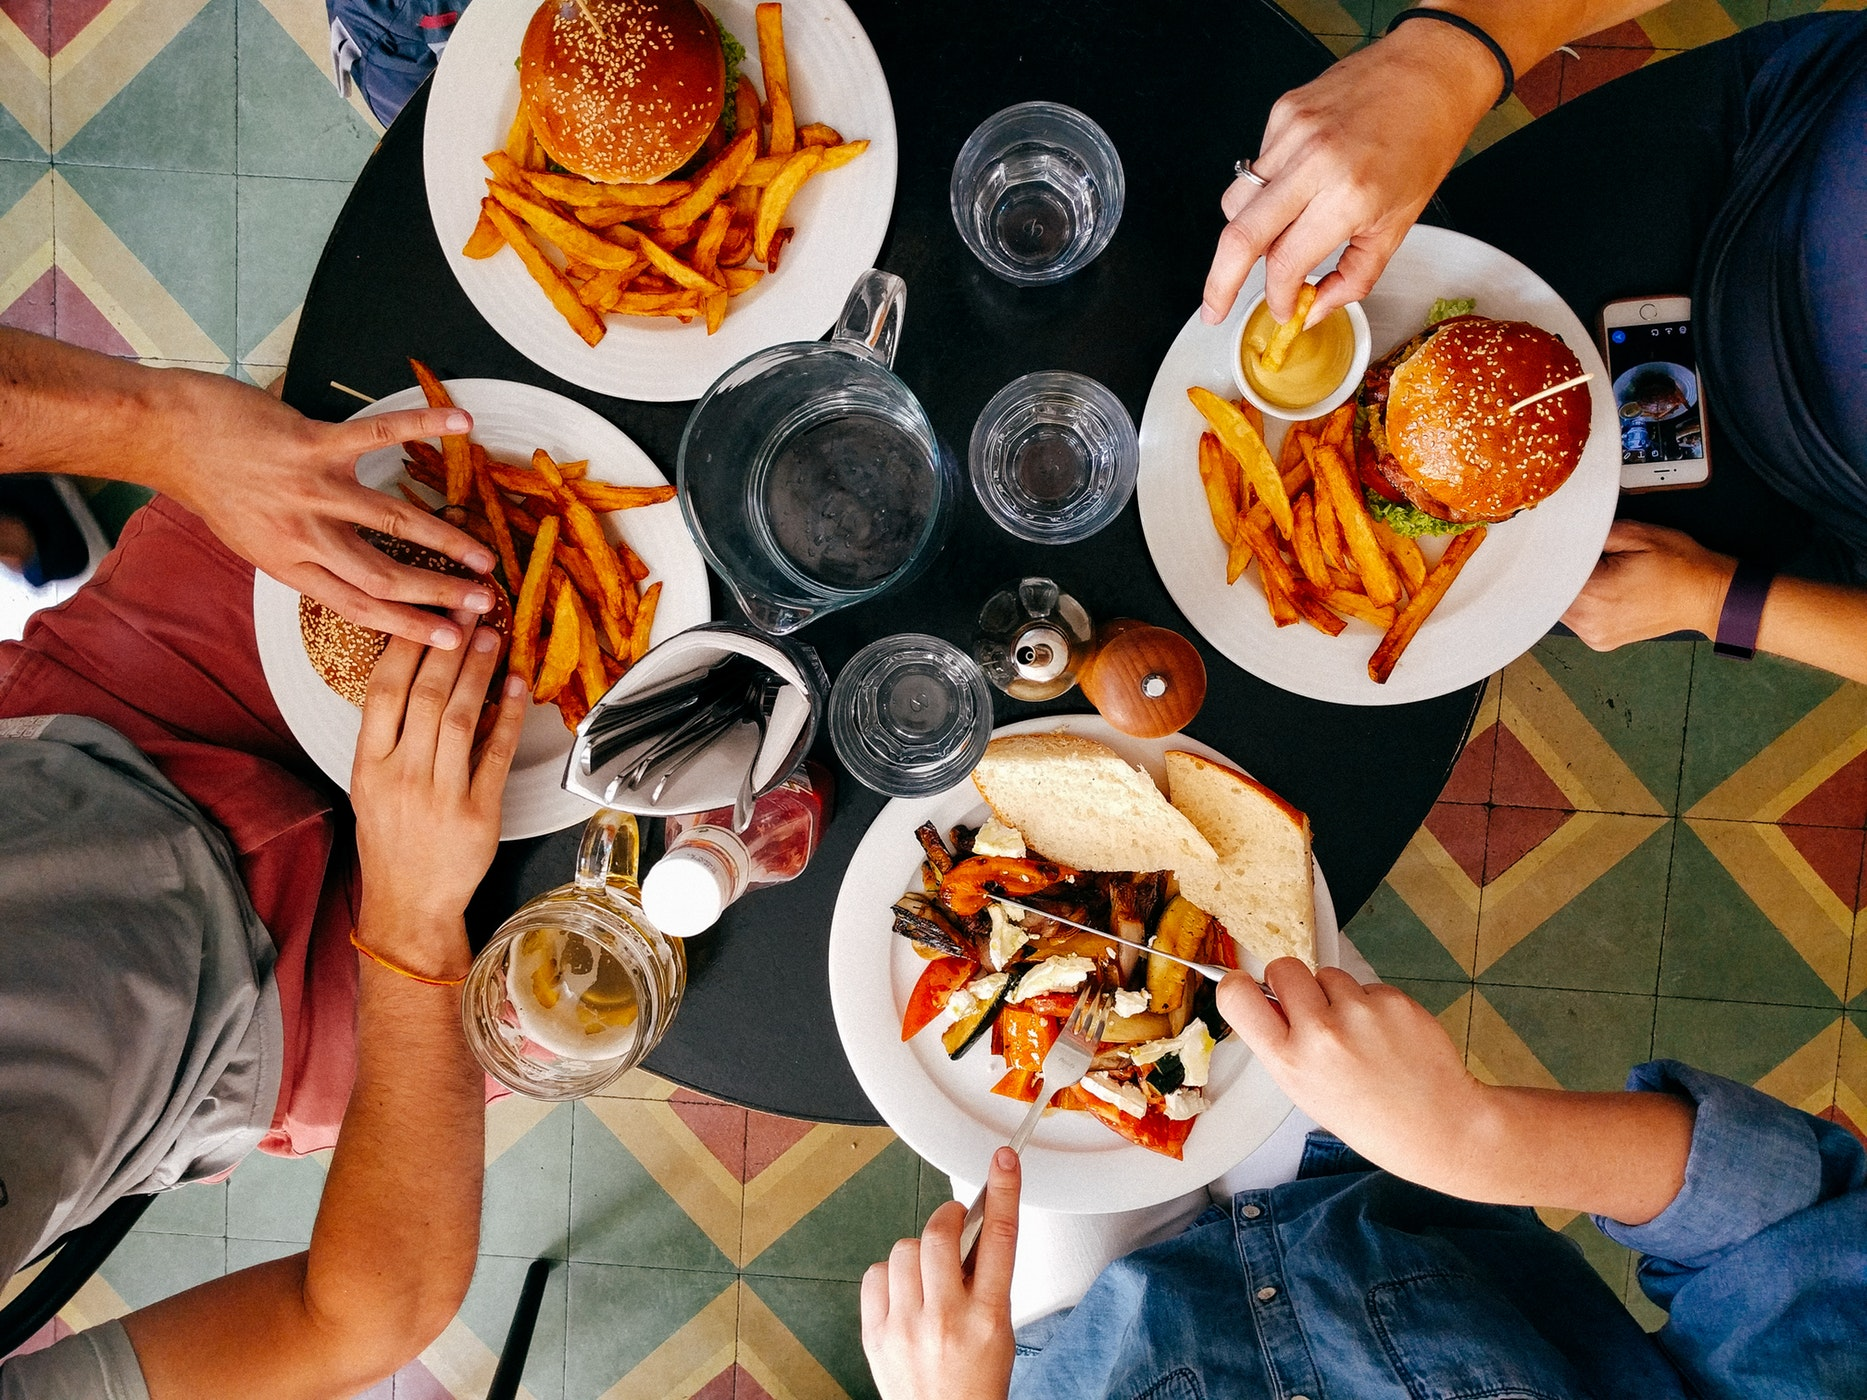 meals and entertainment deduction